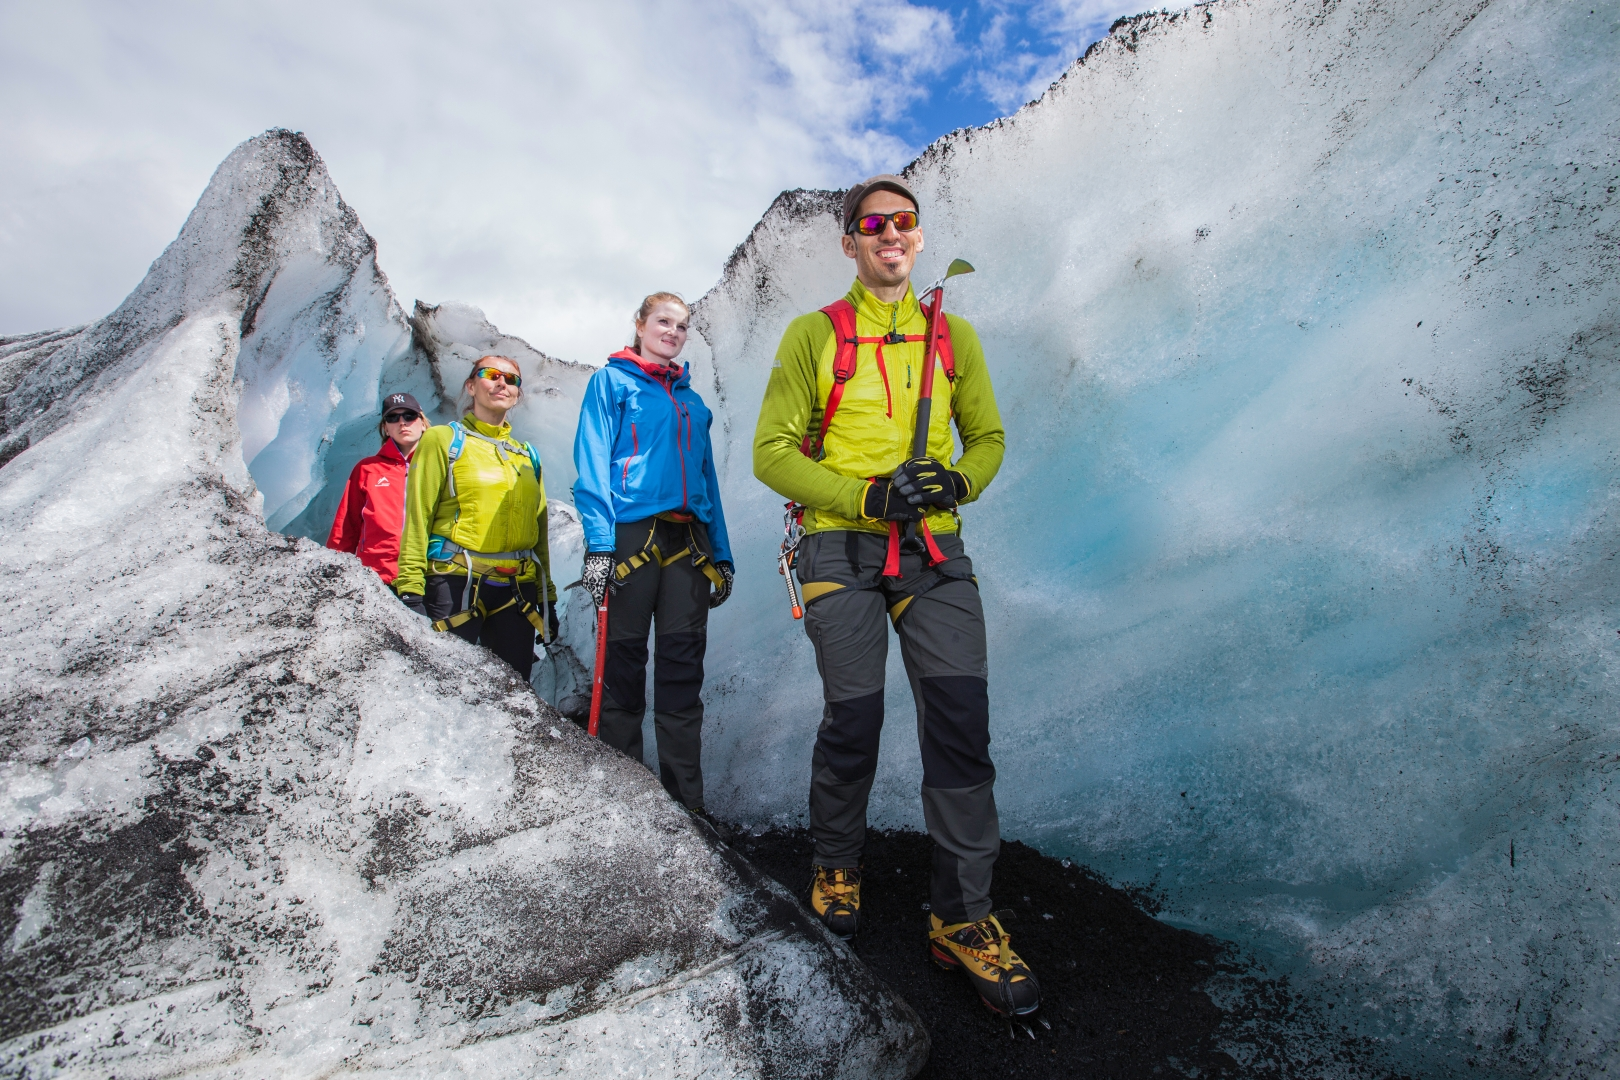 Getting back to the surface of the glacier